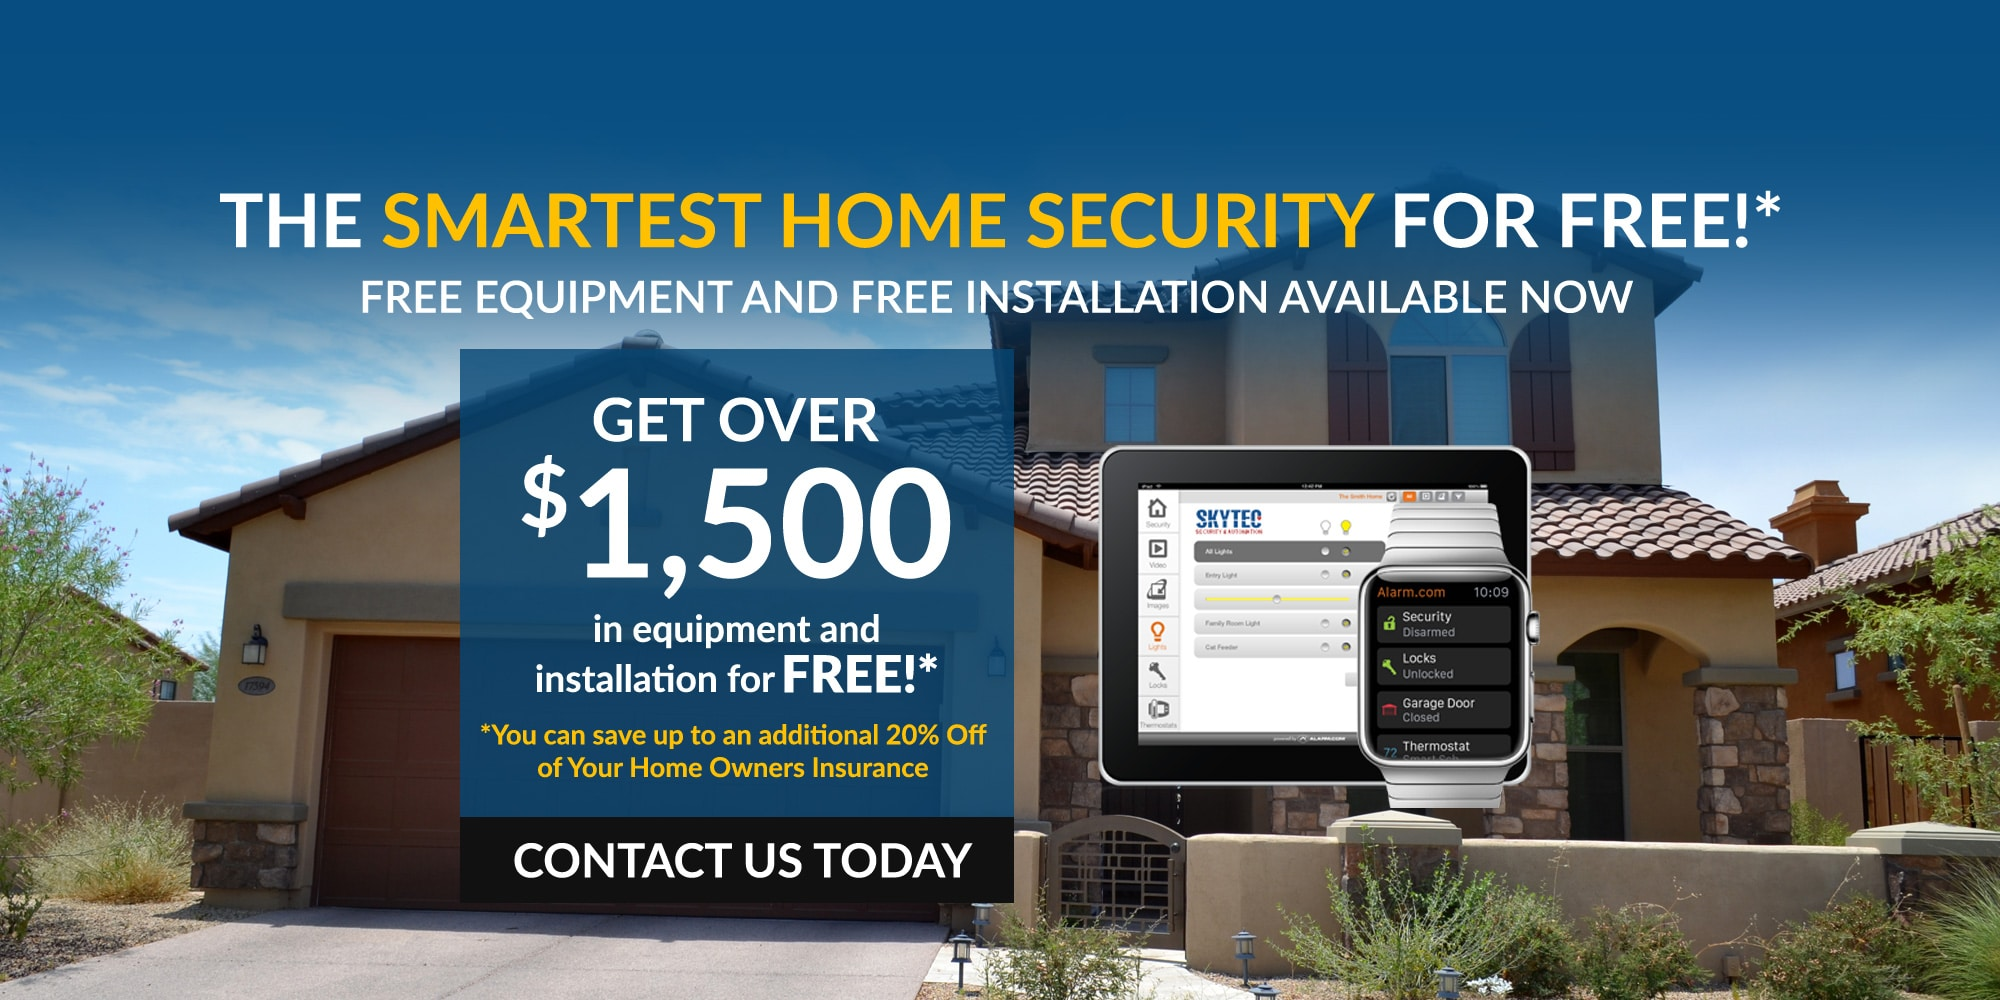 Skytec Home Services